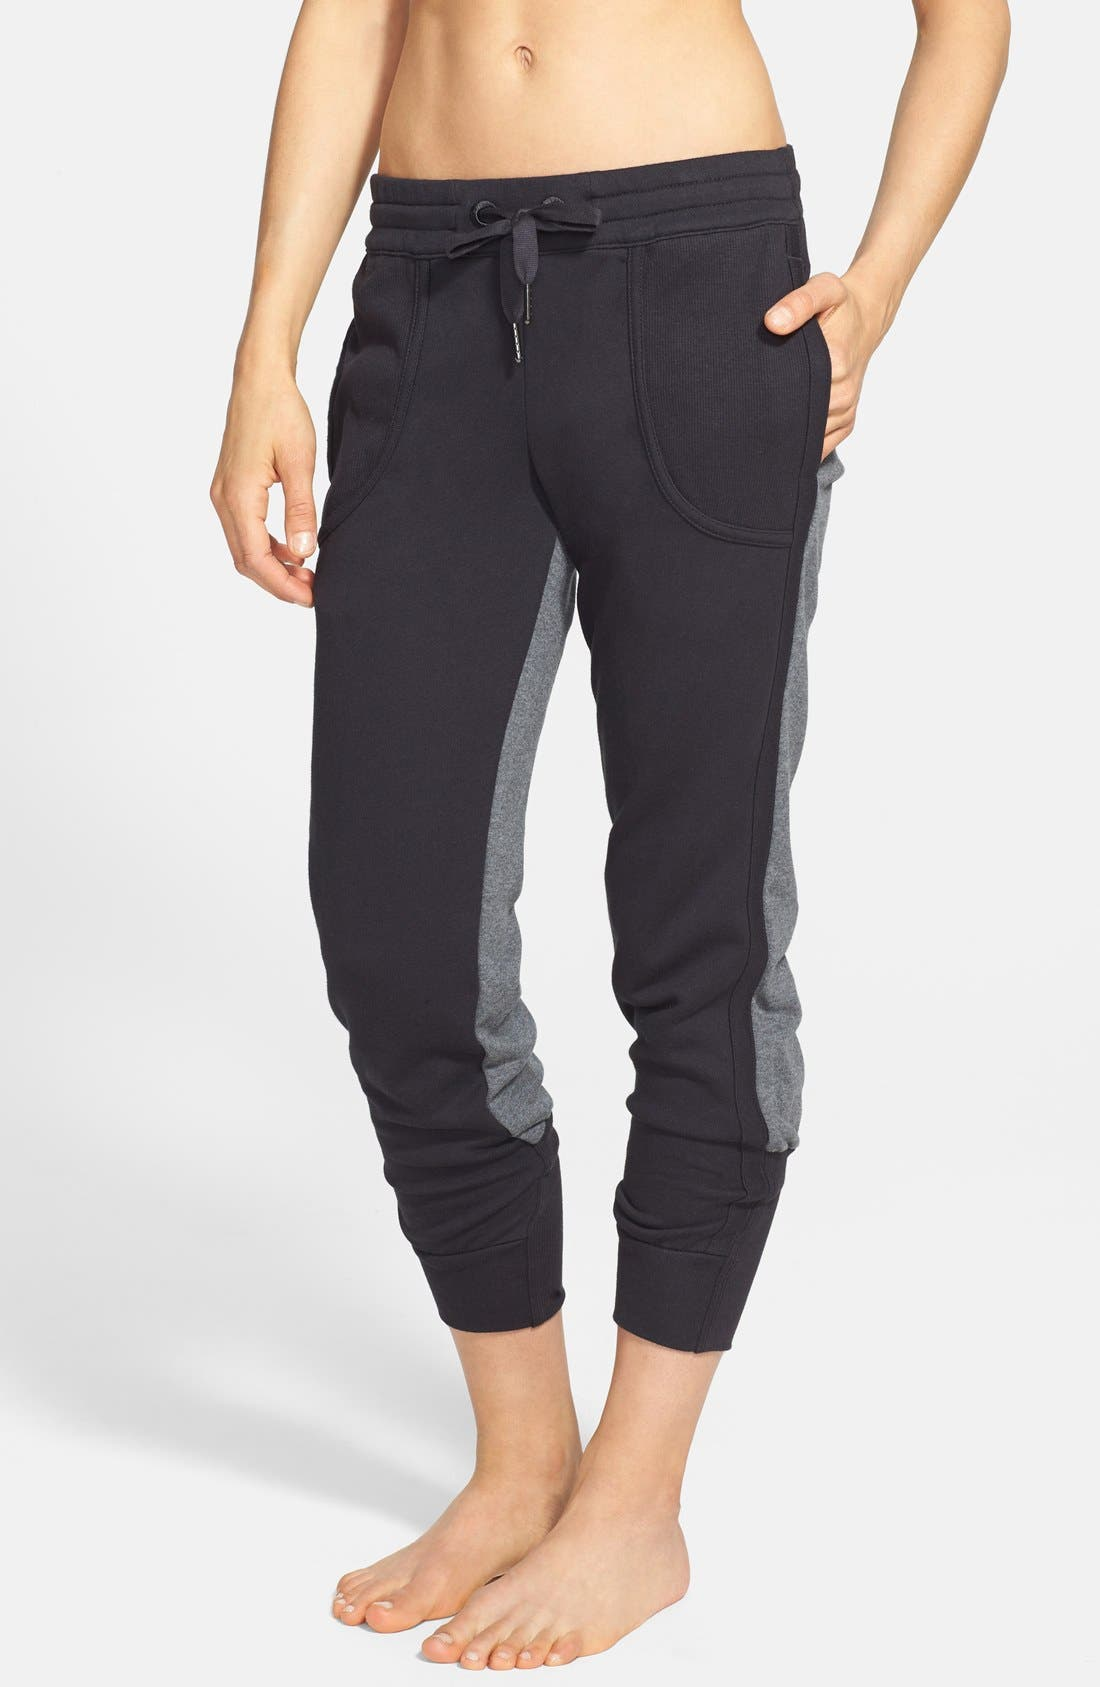 Alternate Image 1 Selected - adidas by Stella McCartney 'Essentials' Colorblock Sweatpants